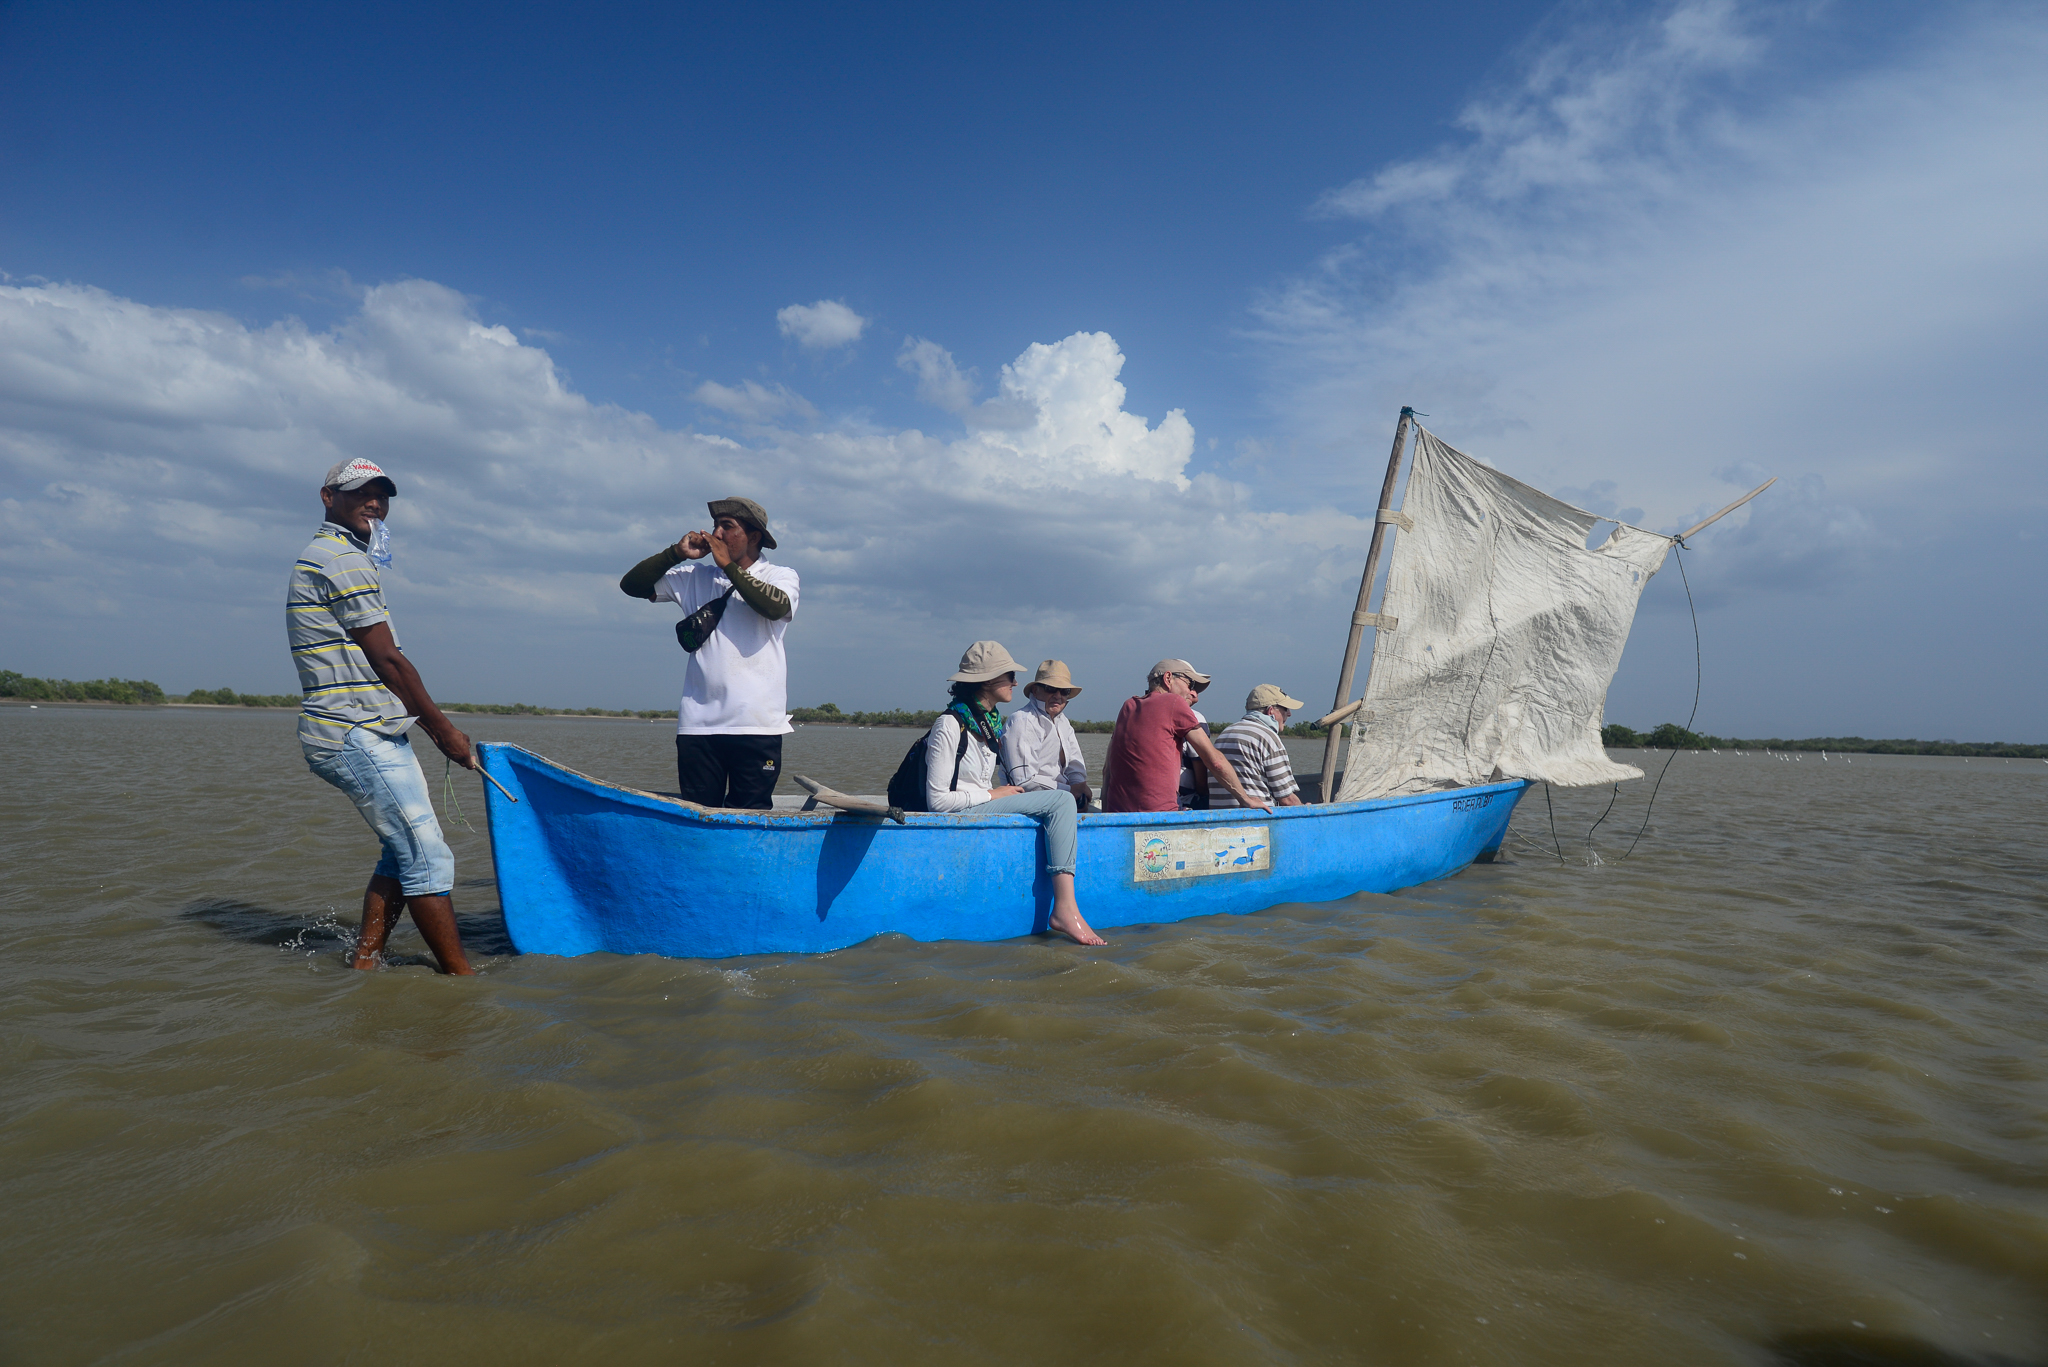 One Wayuú guide shouts instructions as another pulls a canoe of French tourists to shore in Los Flamencos Wildlife Reserve. Photograph by Lindsay Fendt